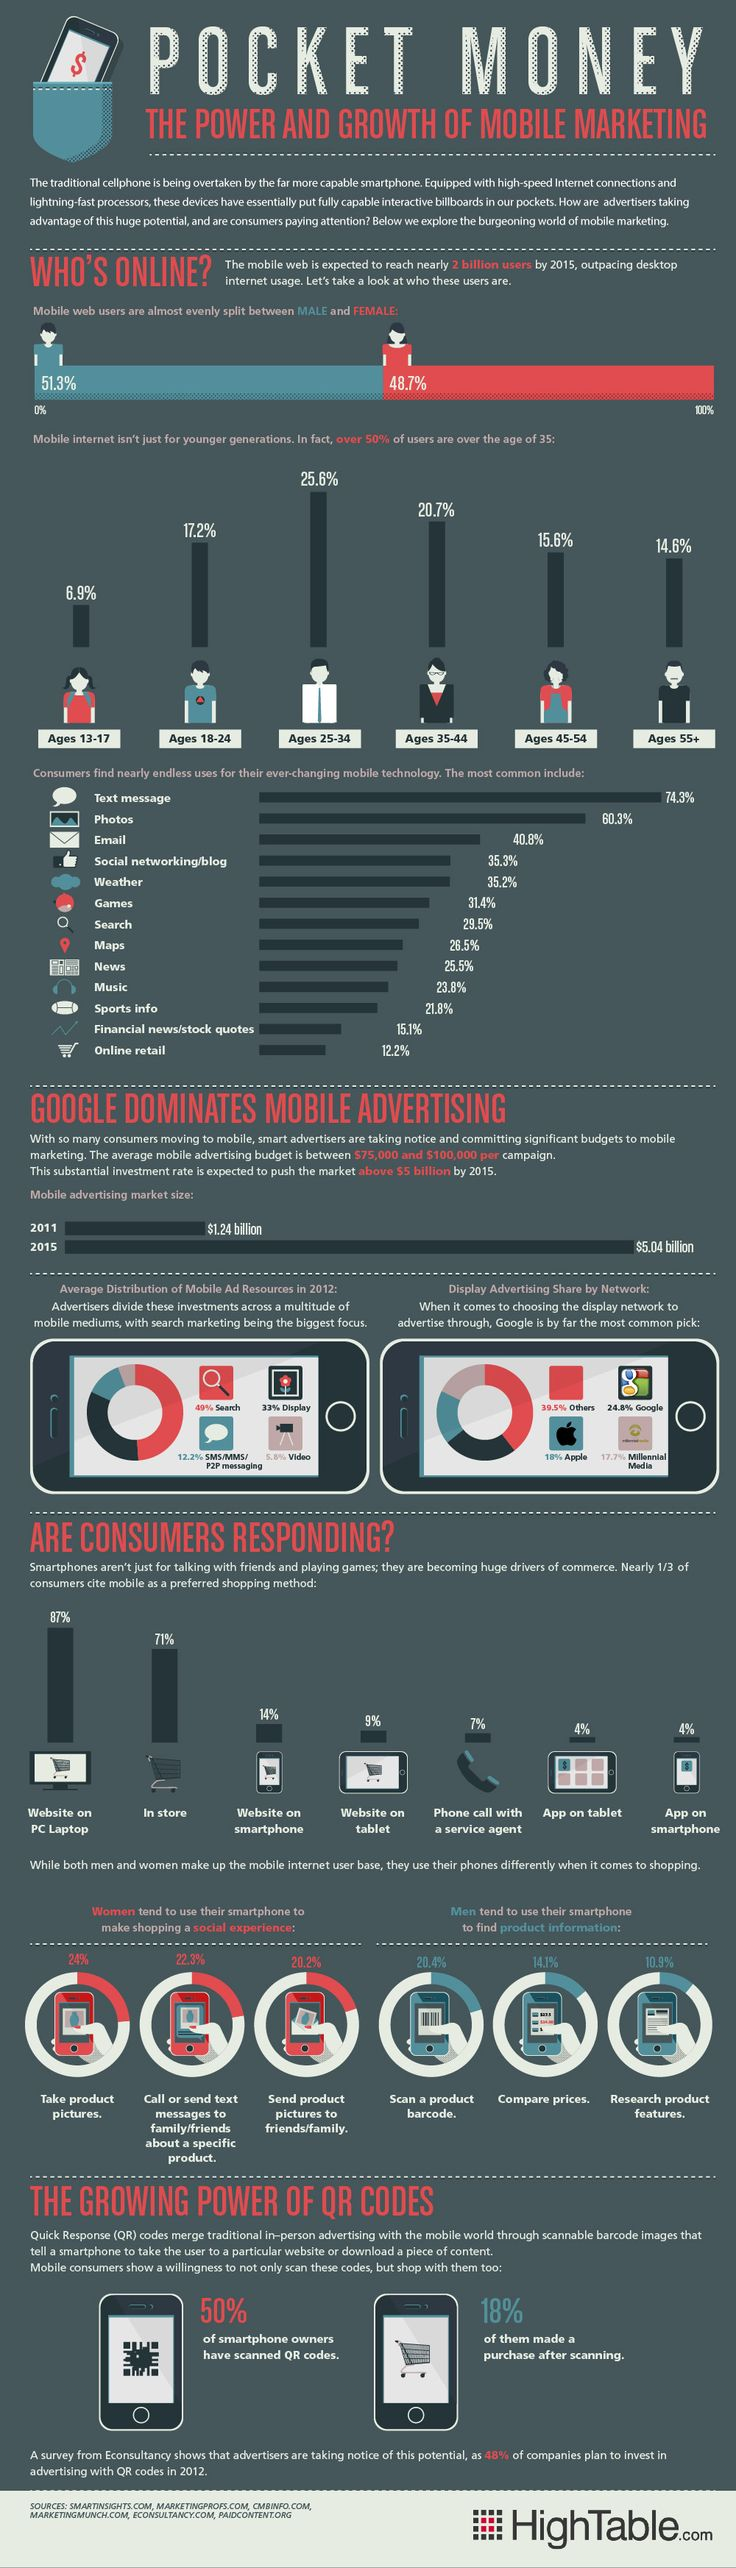 Pocket money: the power & growth of #mobile #MKTG